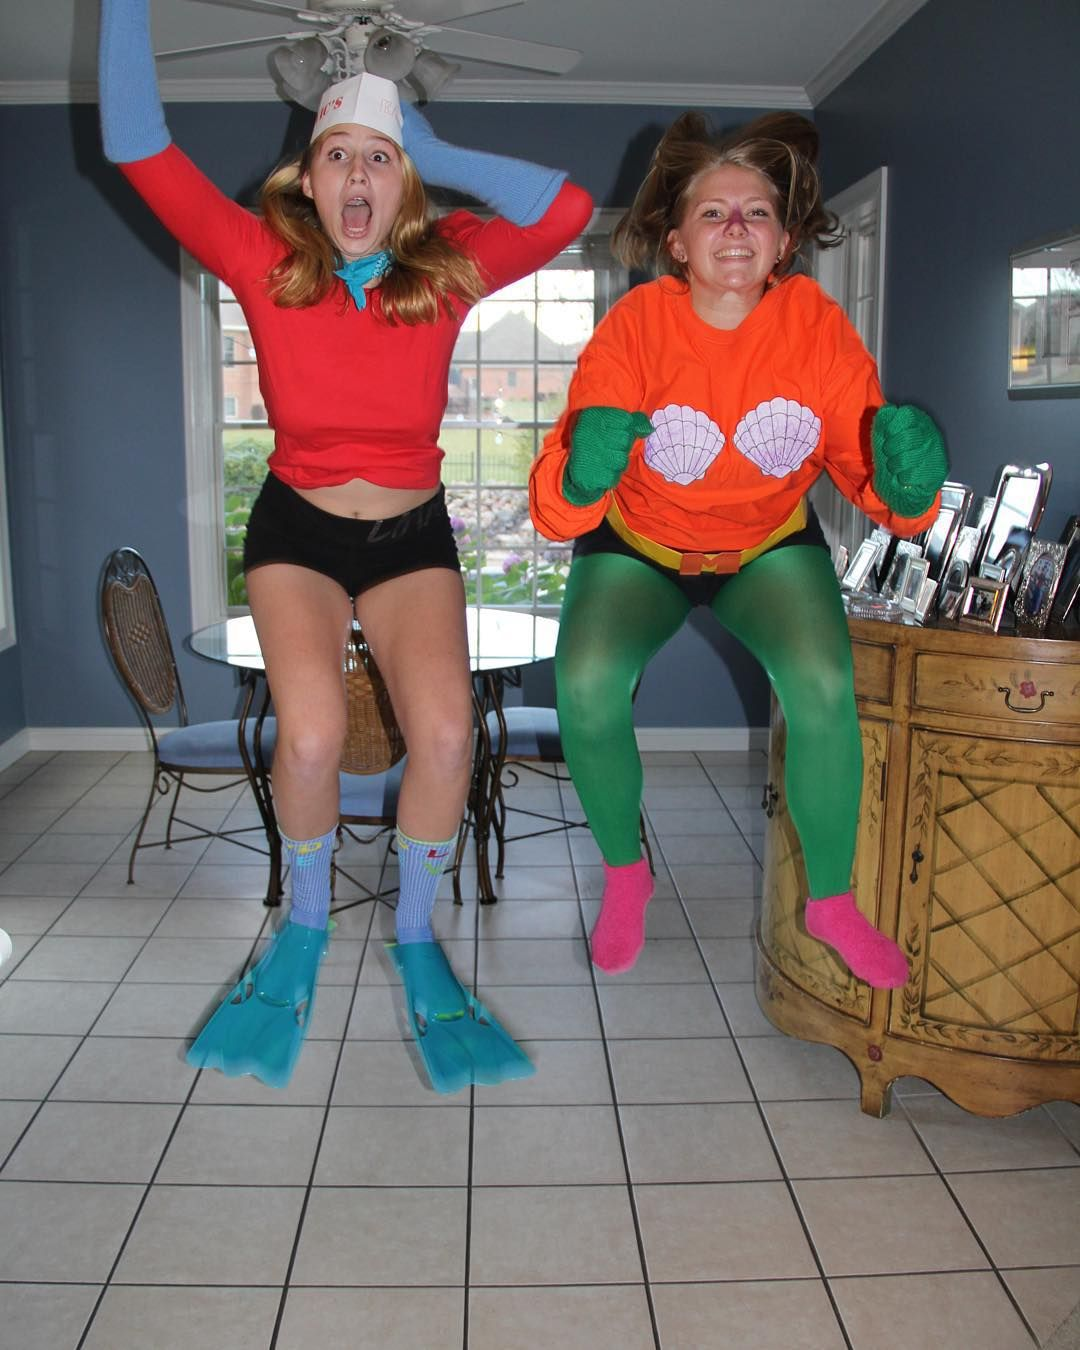 Mermaid Man And Barnacle Boy Such Unique Diy Halloween Costumes To Rock Wit Trendy Halloween Costumes Halloween Costume Outfits Funny Group Halloween Costumes